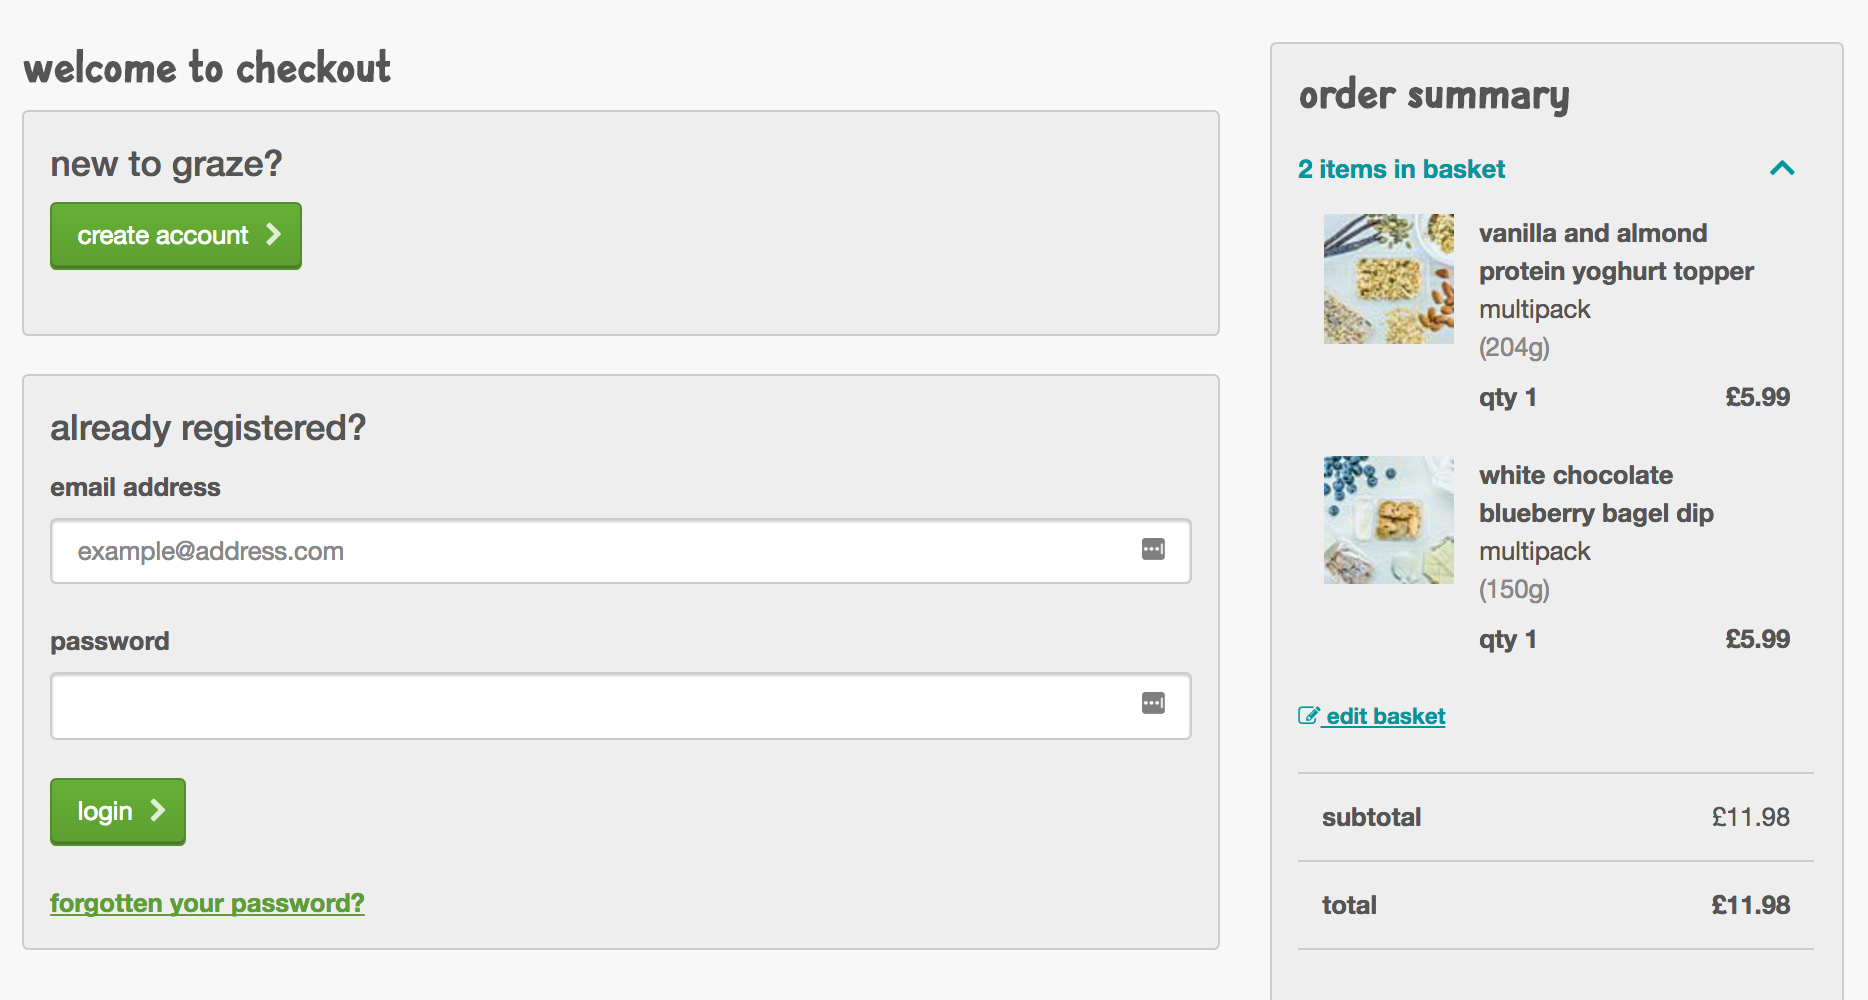 The customised Magento 2 checkout takes less than 2 seconds to load